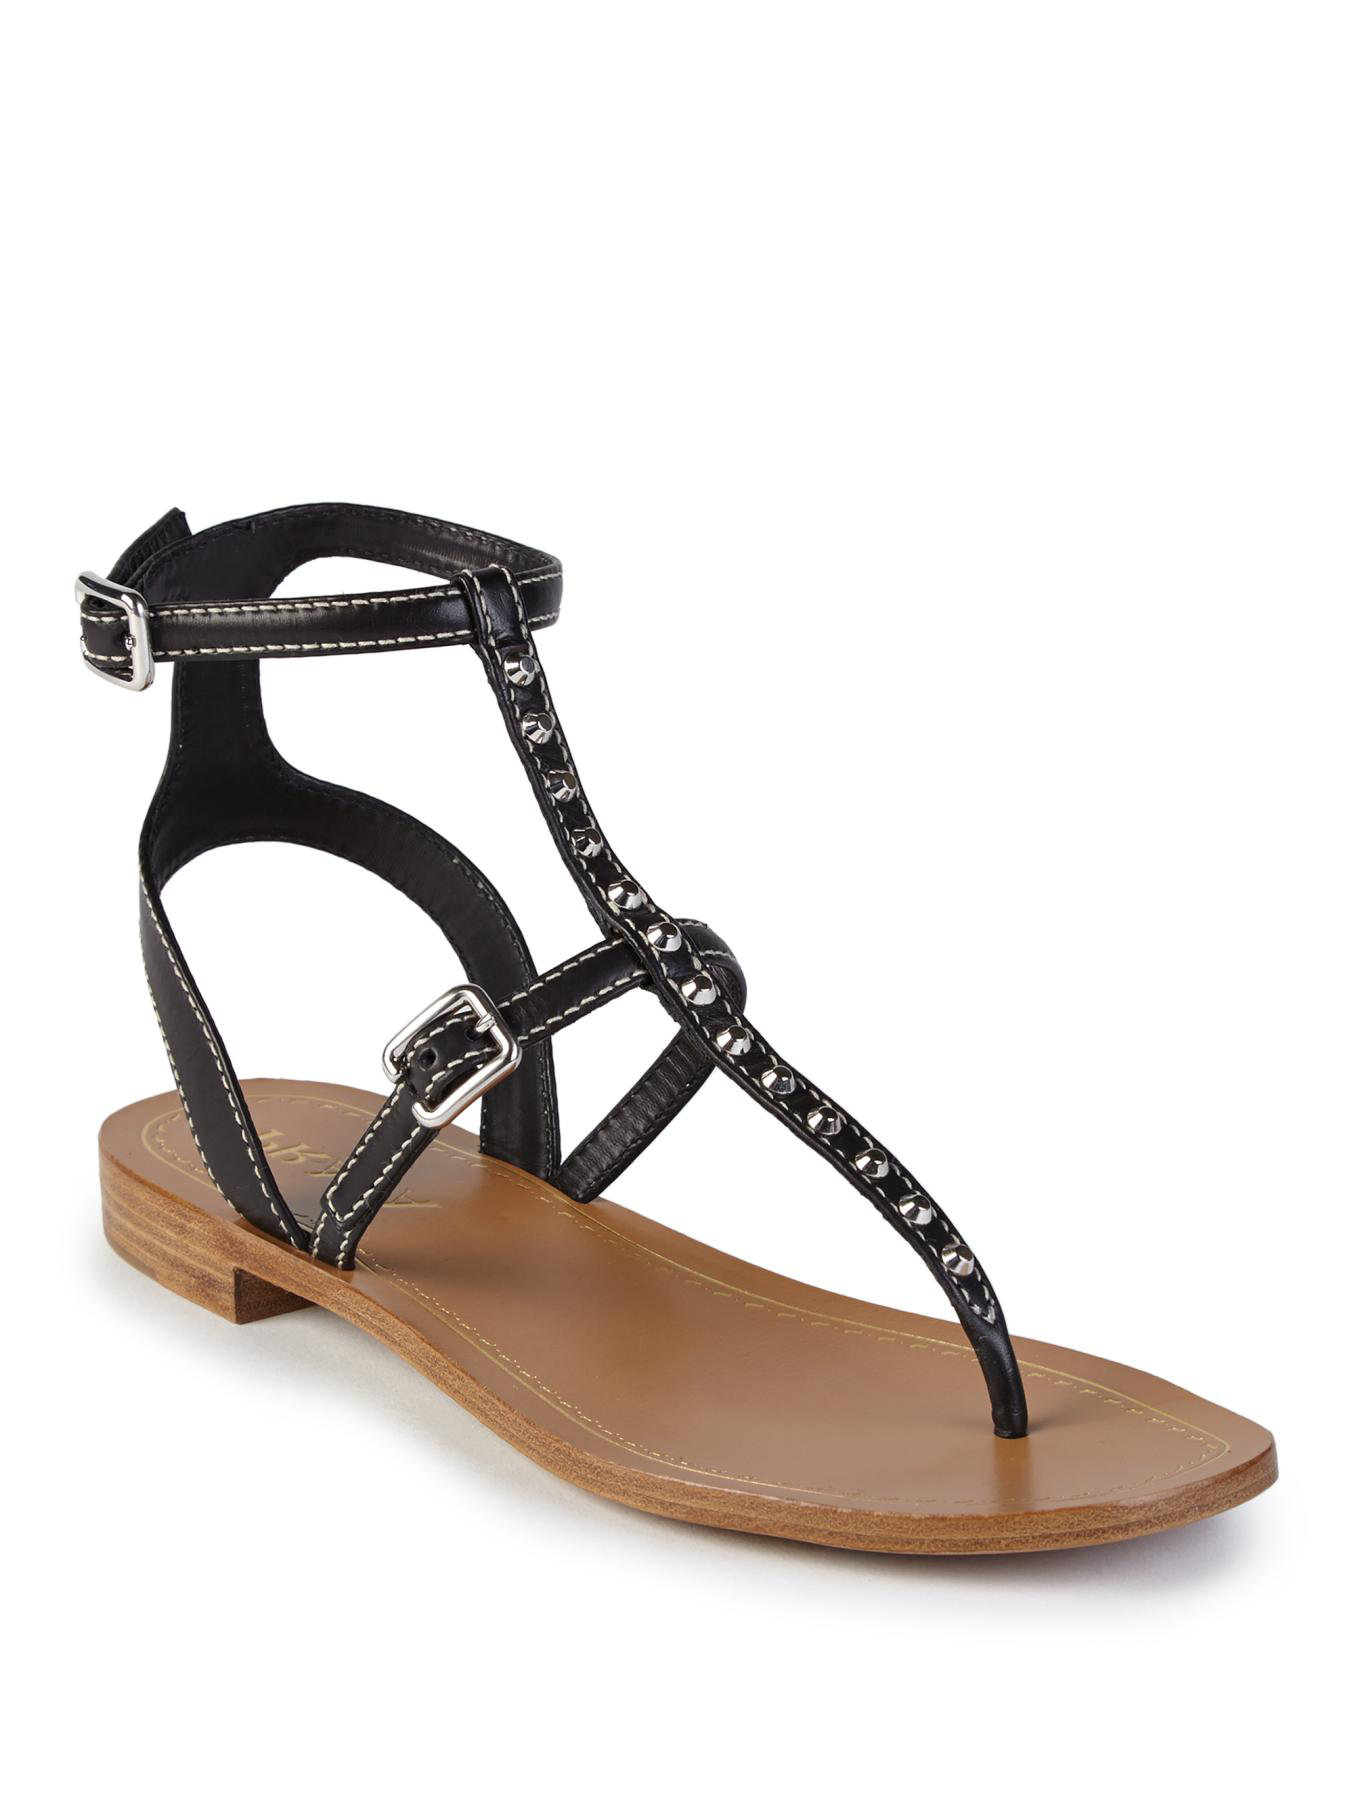 With Paypal Cheap Online Free Shipping Visit studded strap sandals - Black Prada Clearance Brand New Unisex Huge Surprise For Sale NNWFTn